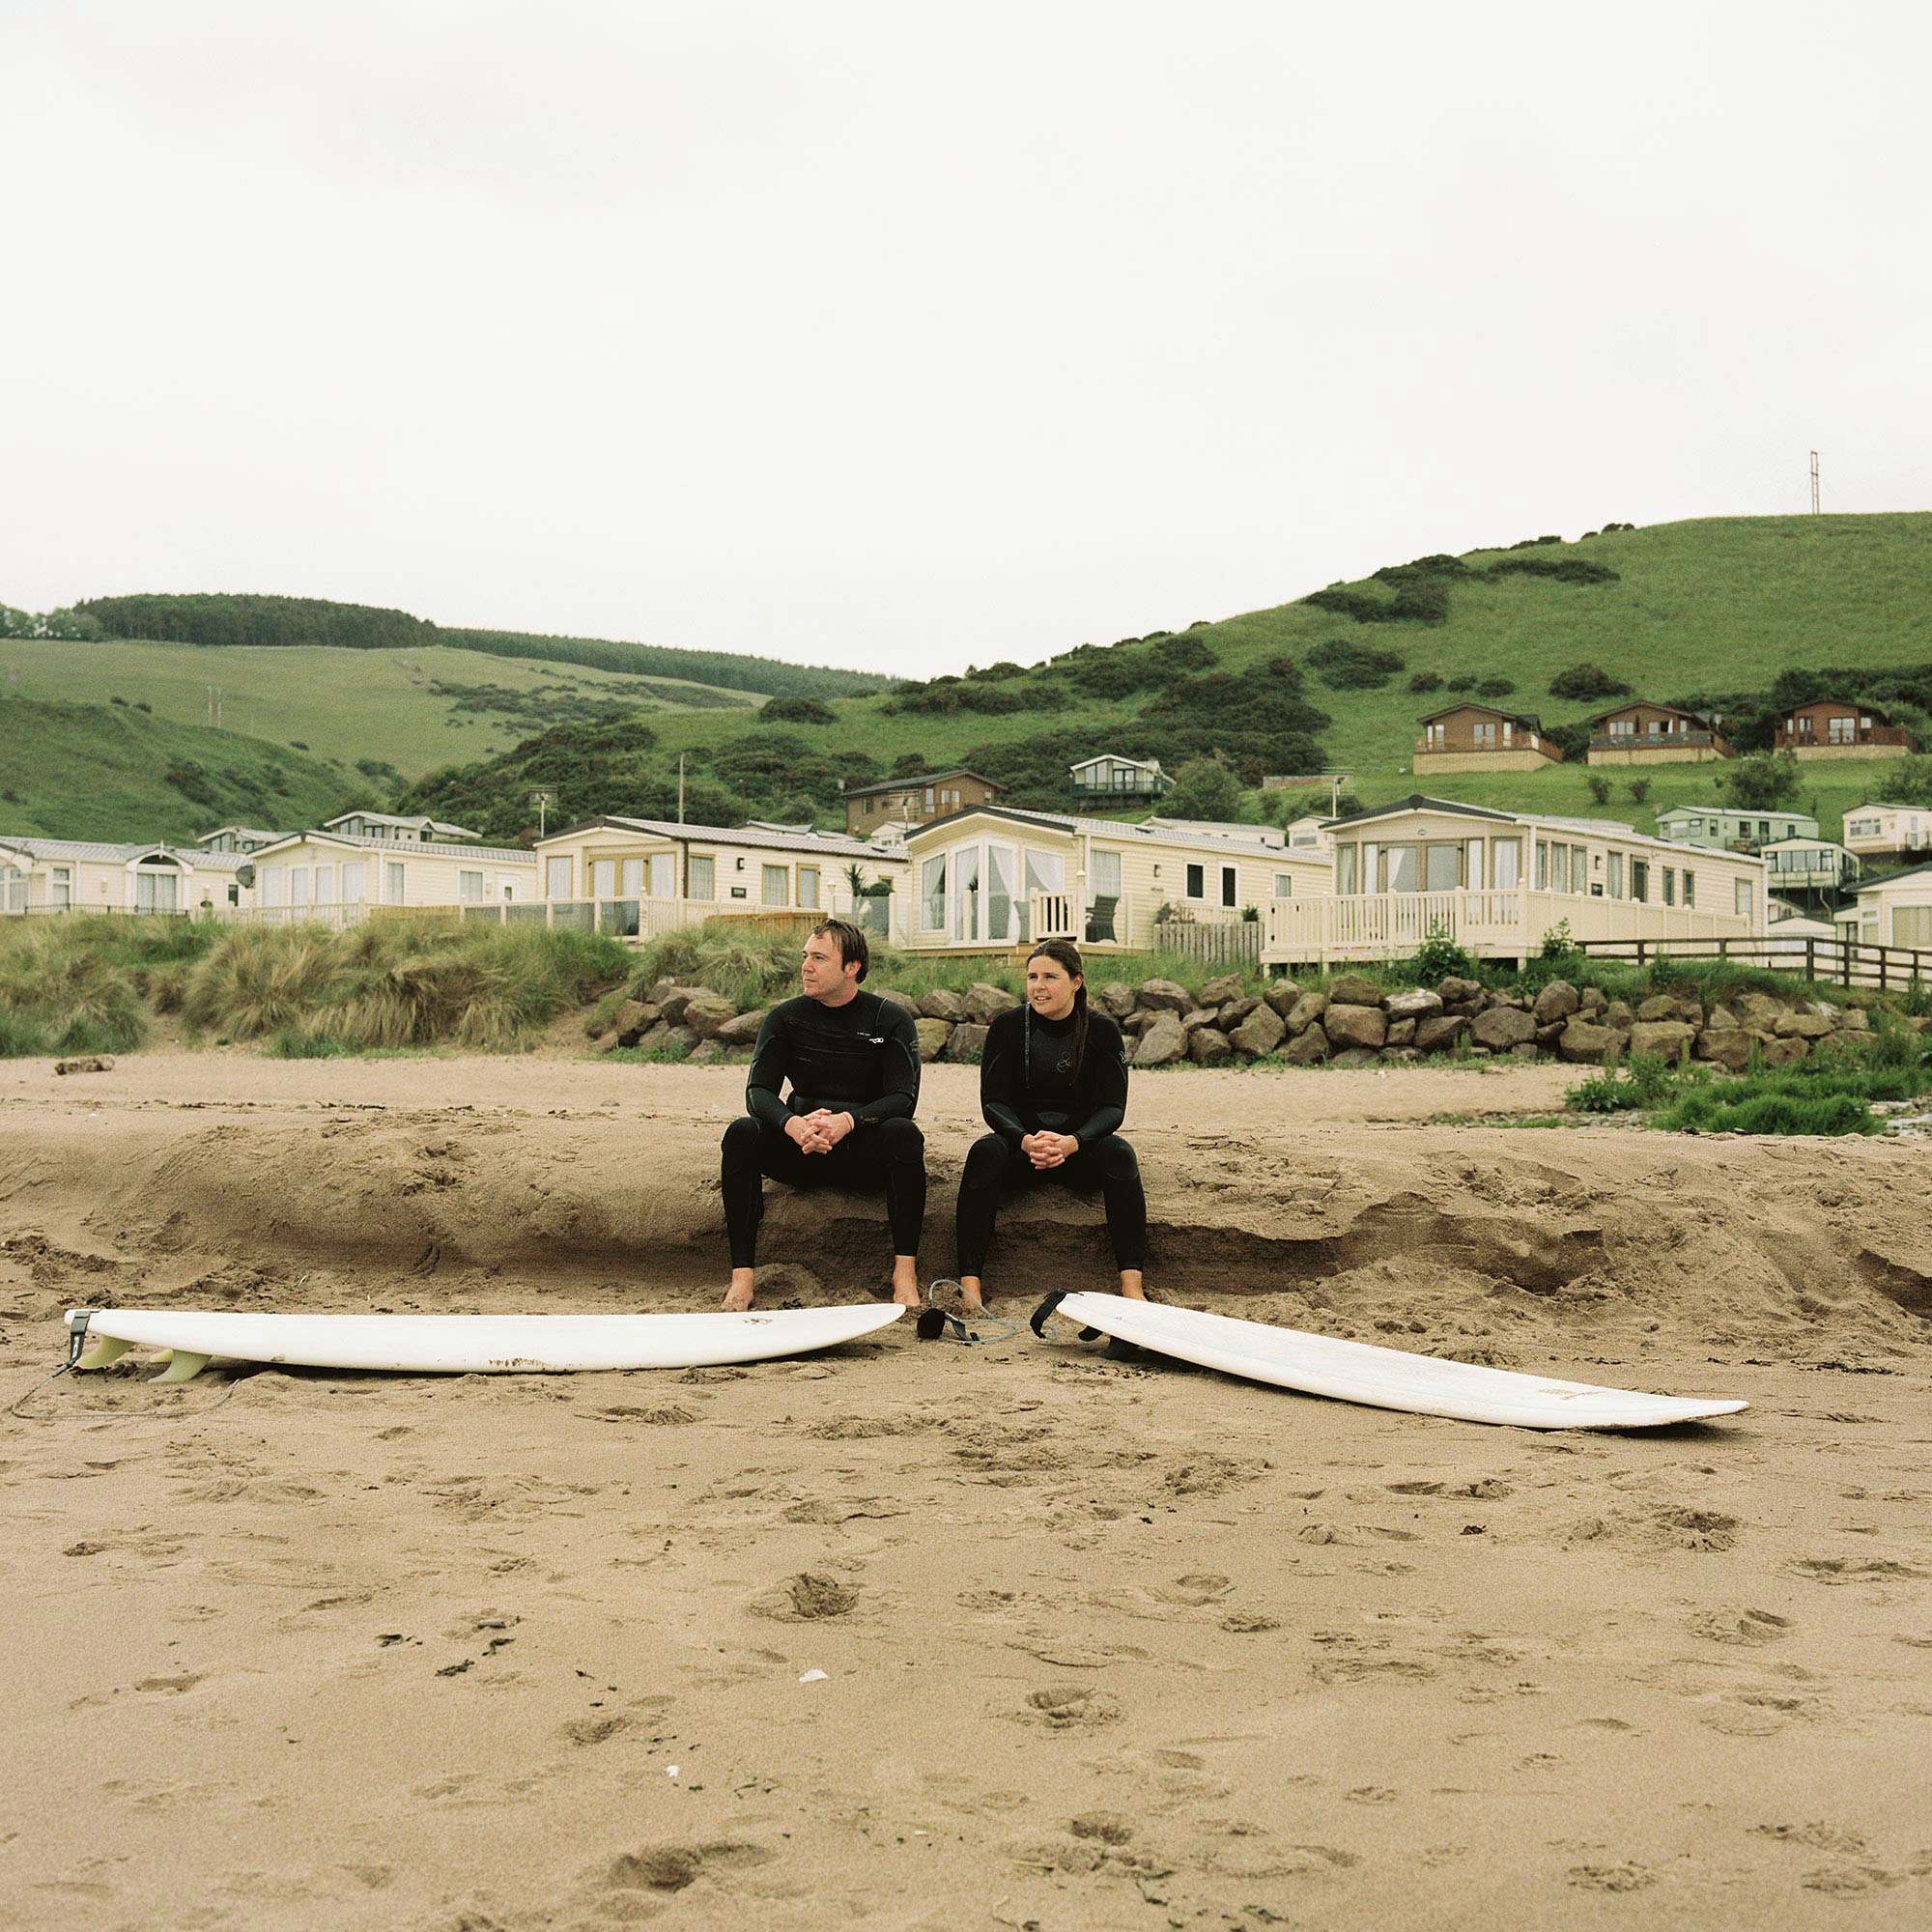 Nick Gregory from England and Matilde Garcia from Portugal, who both live and work in Edinburgh, take a break from surfing in Pease Bay